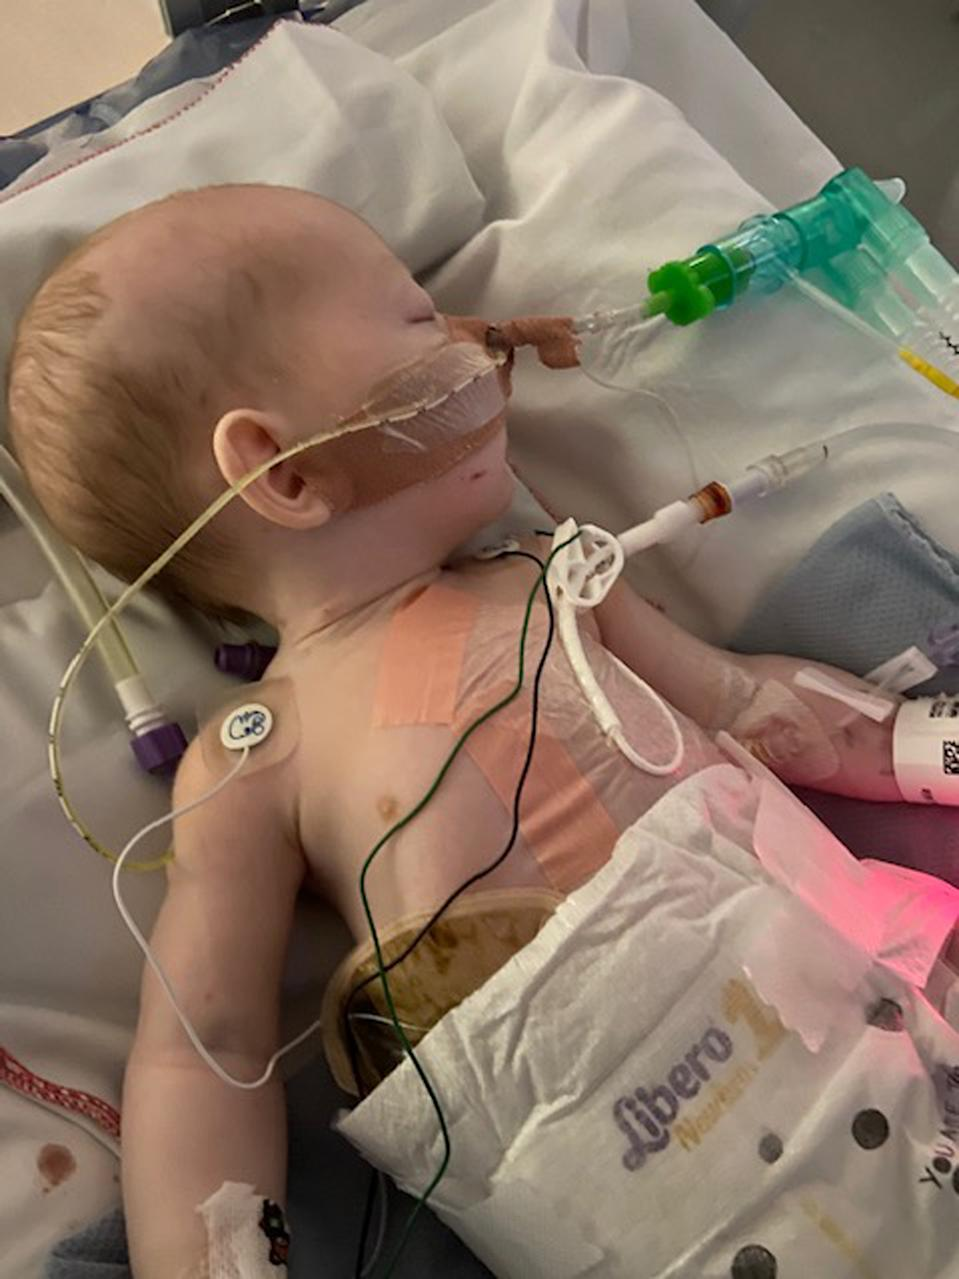 Baby Elliot was born with his internal organs outside his body. (PA Real Life/Collect)